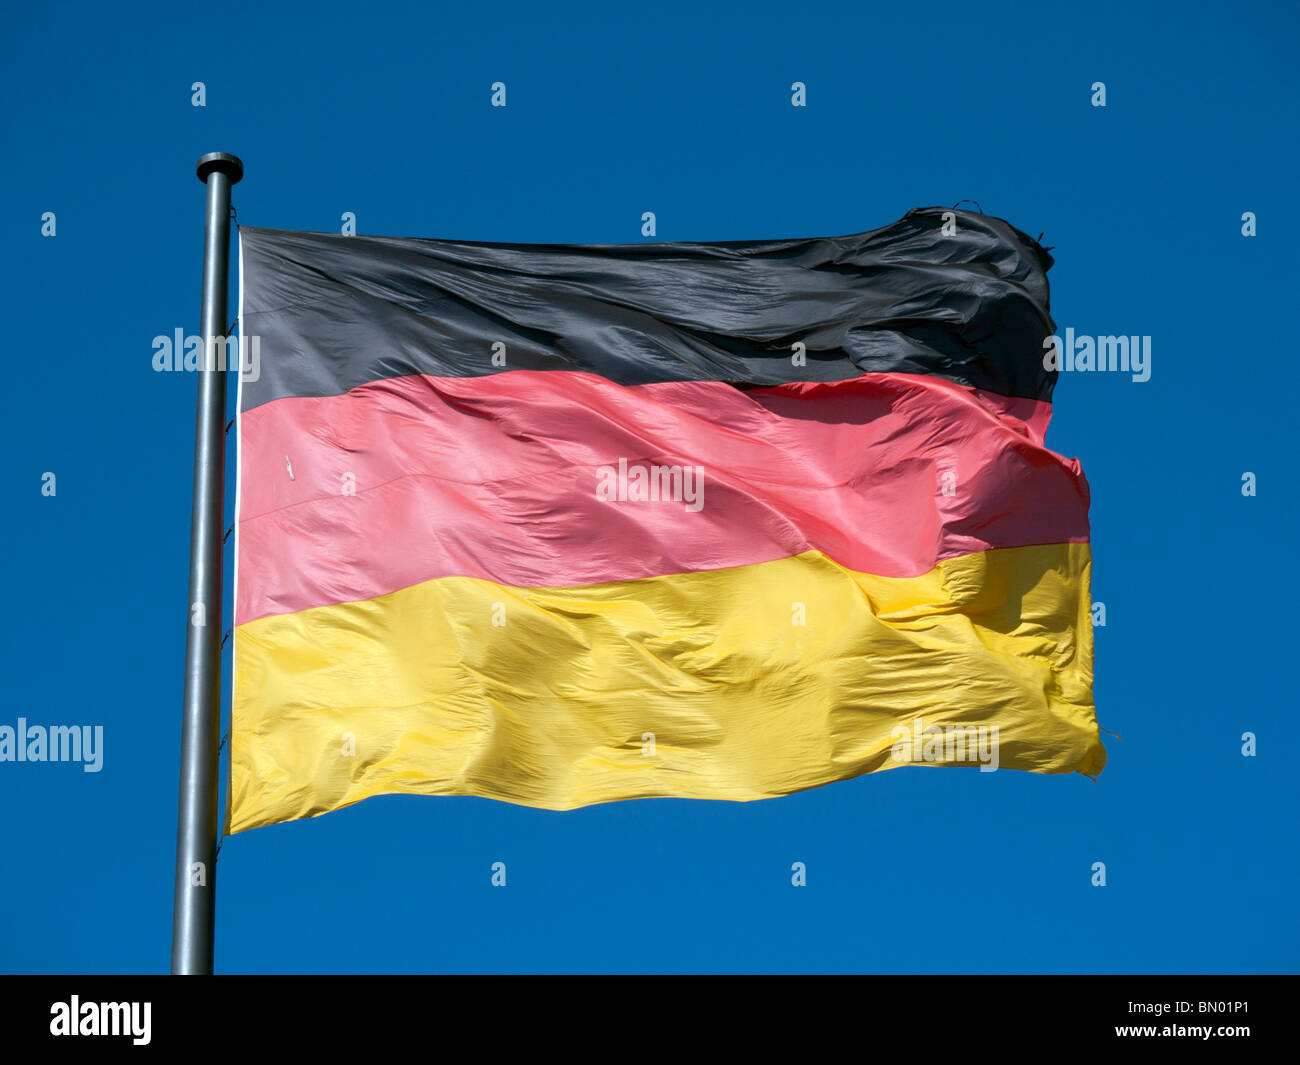 Close-up view of German flag - Stock Image